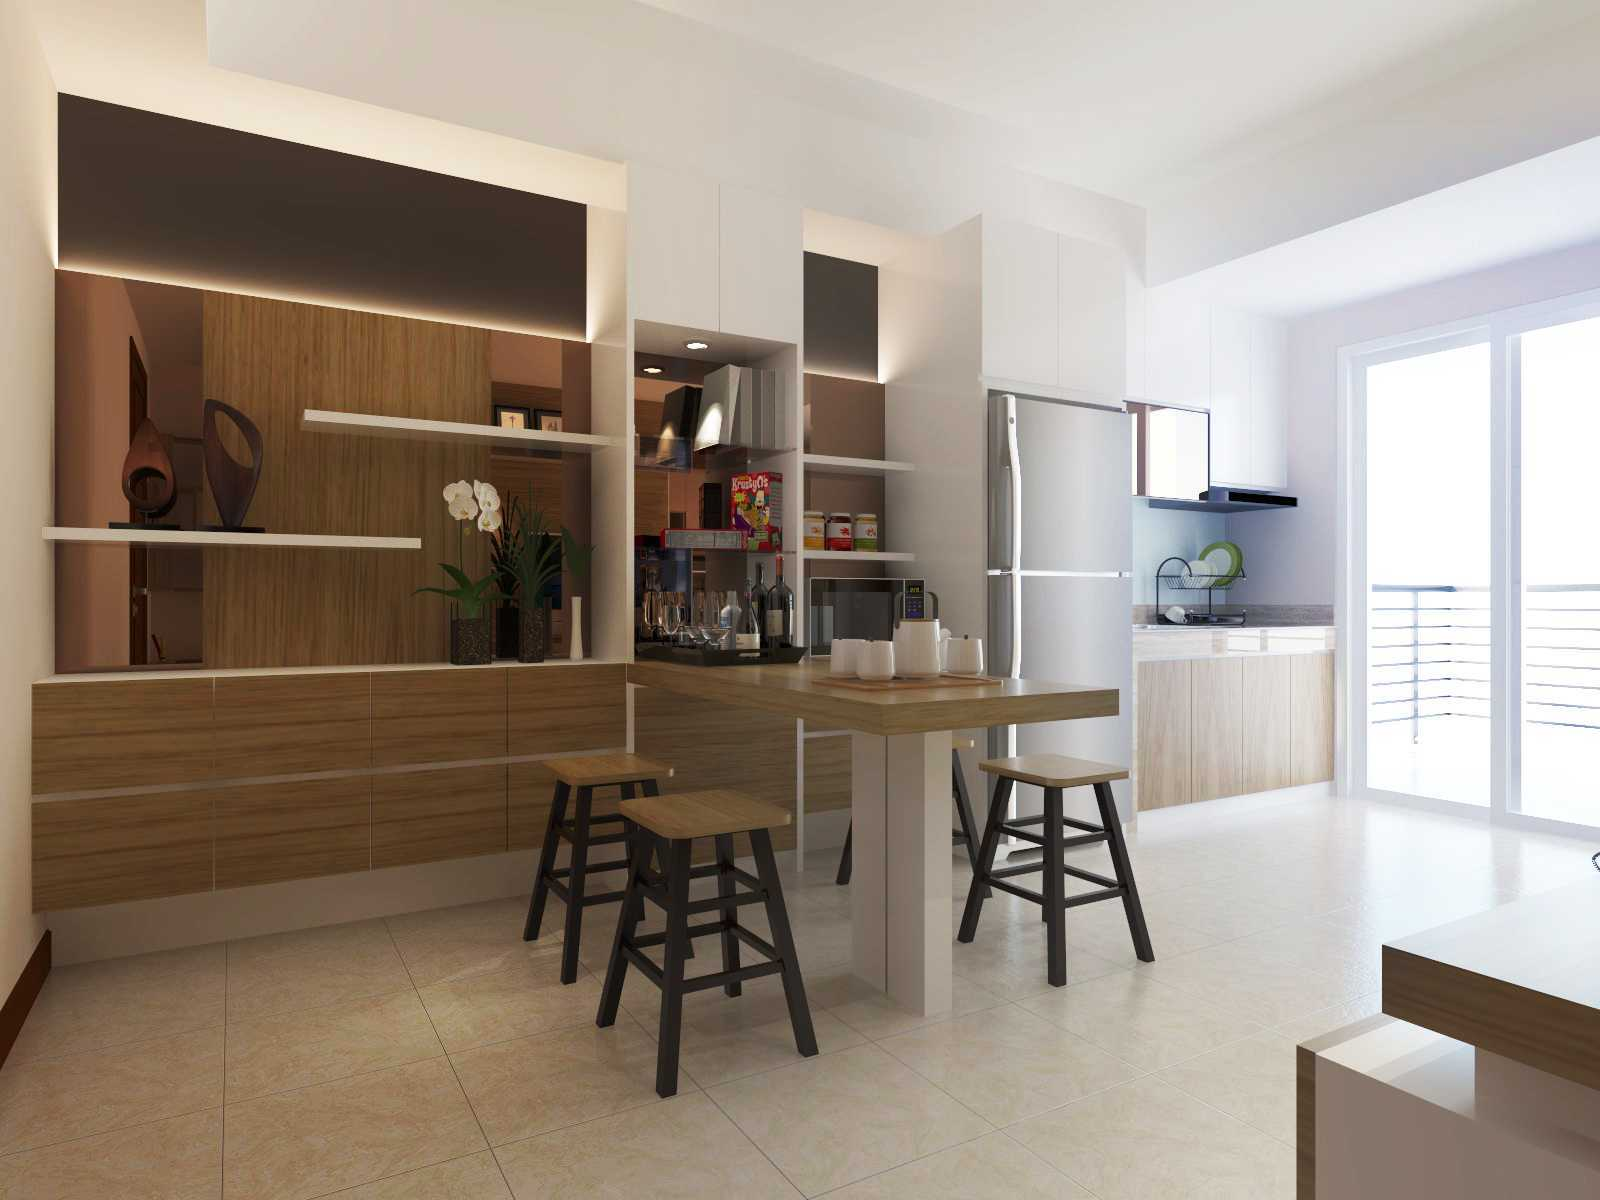 Mbartliving Interior Apartment Mediterania   Mbartliving-Interior-Apartment-Mediterania Minimalist 56457